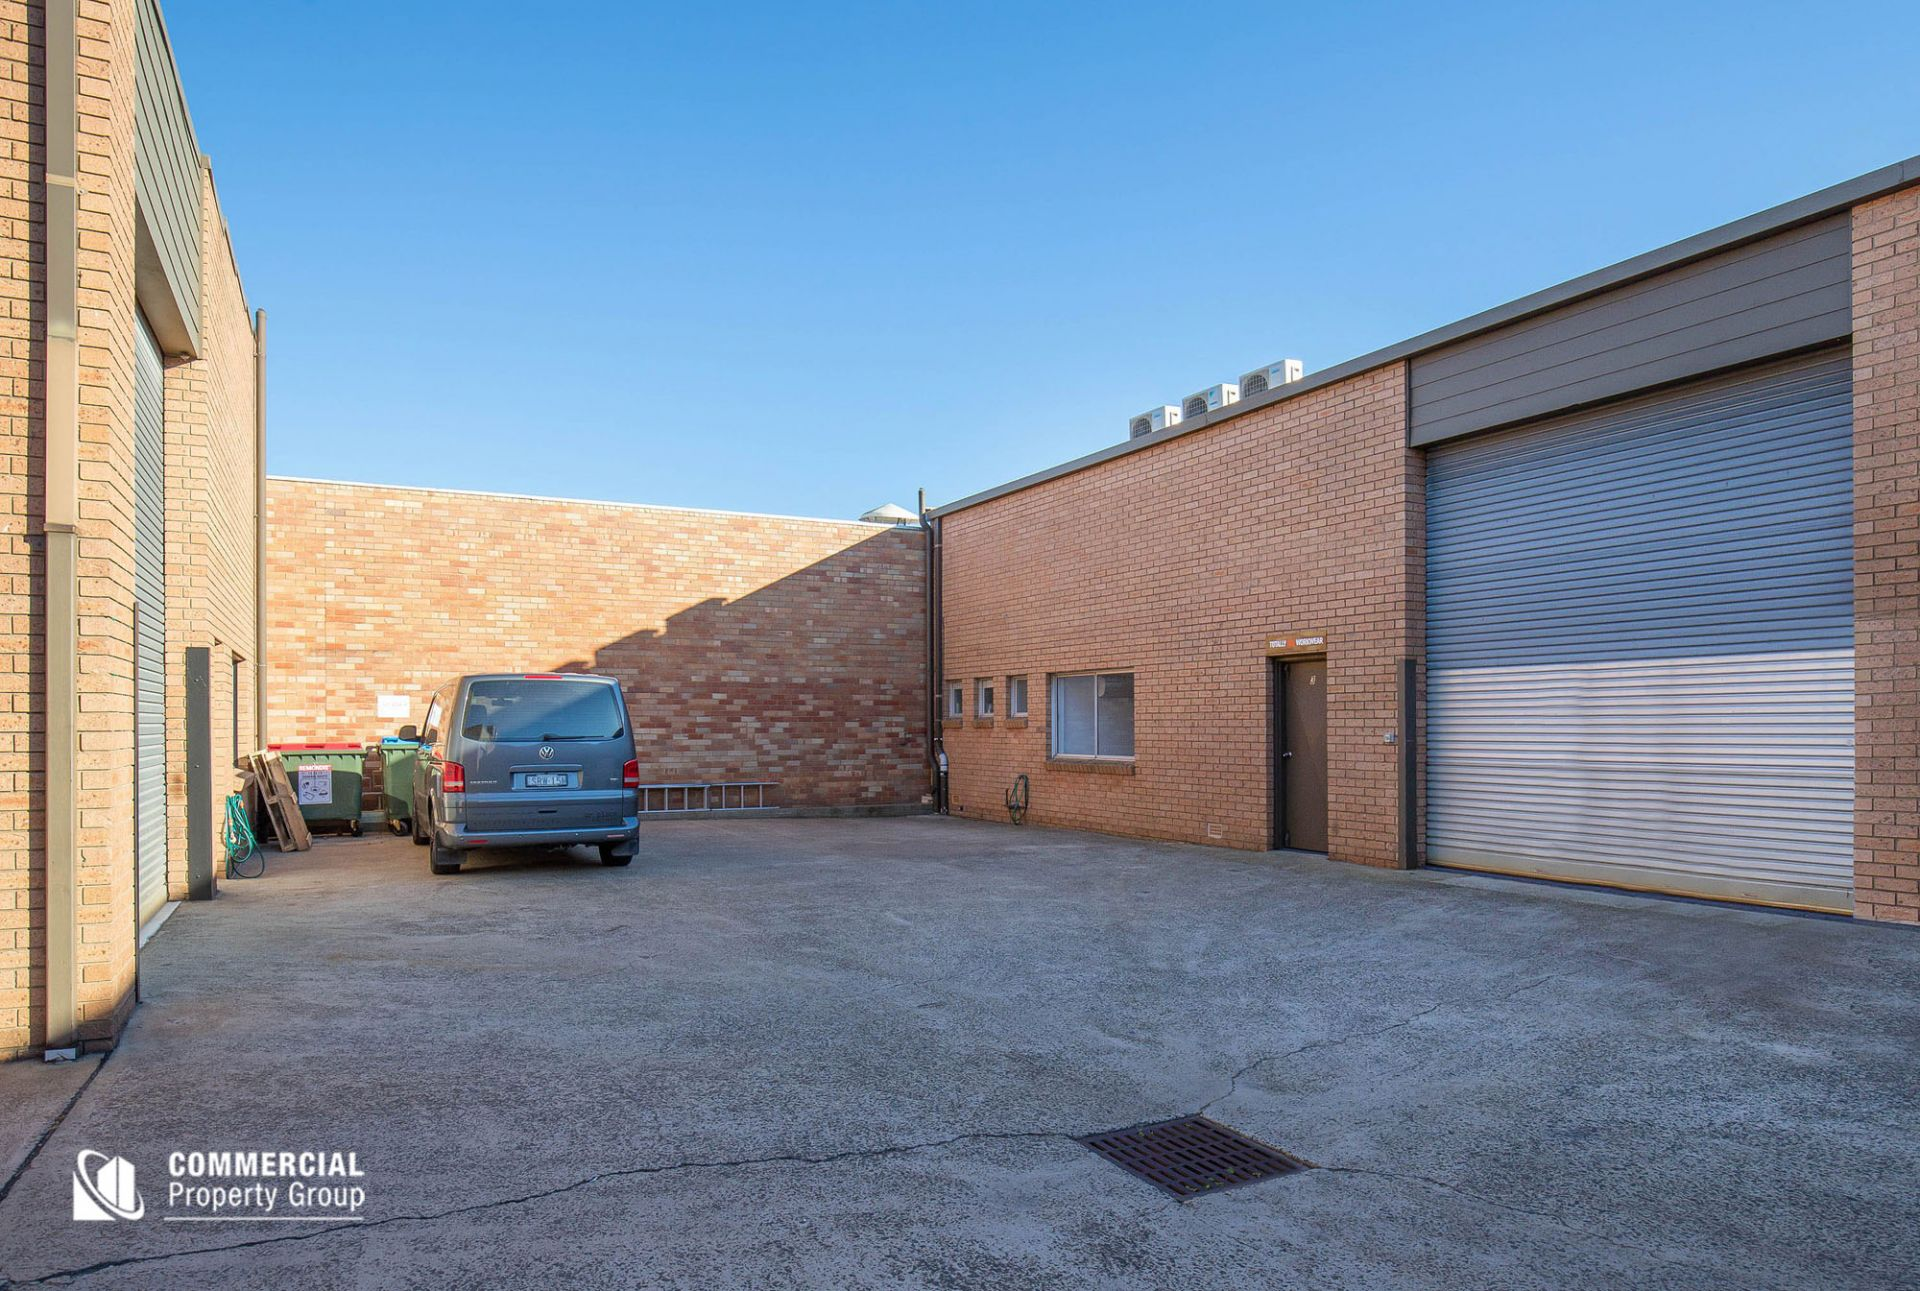 222m² Office & Warehouse - Ideal for Distribution